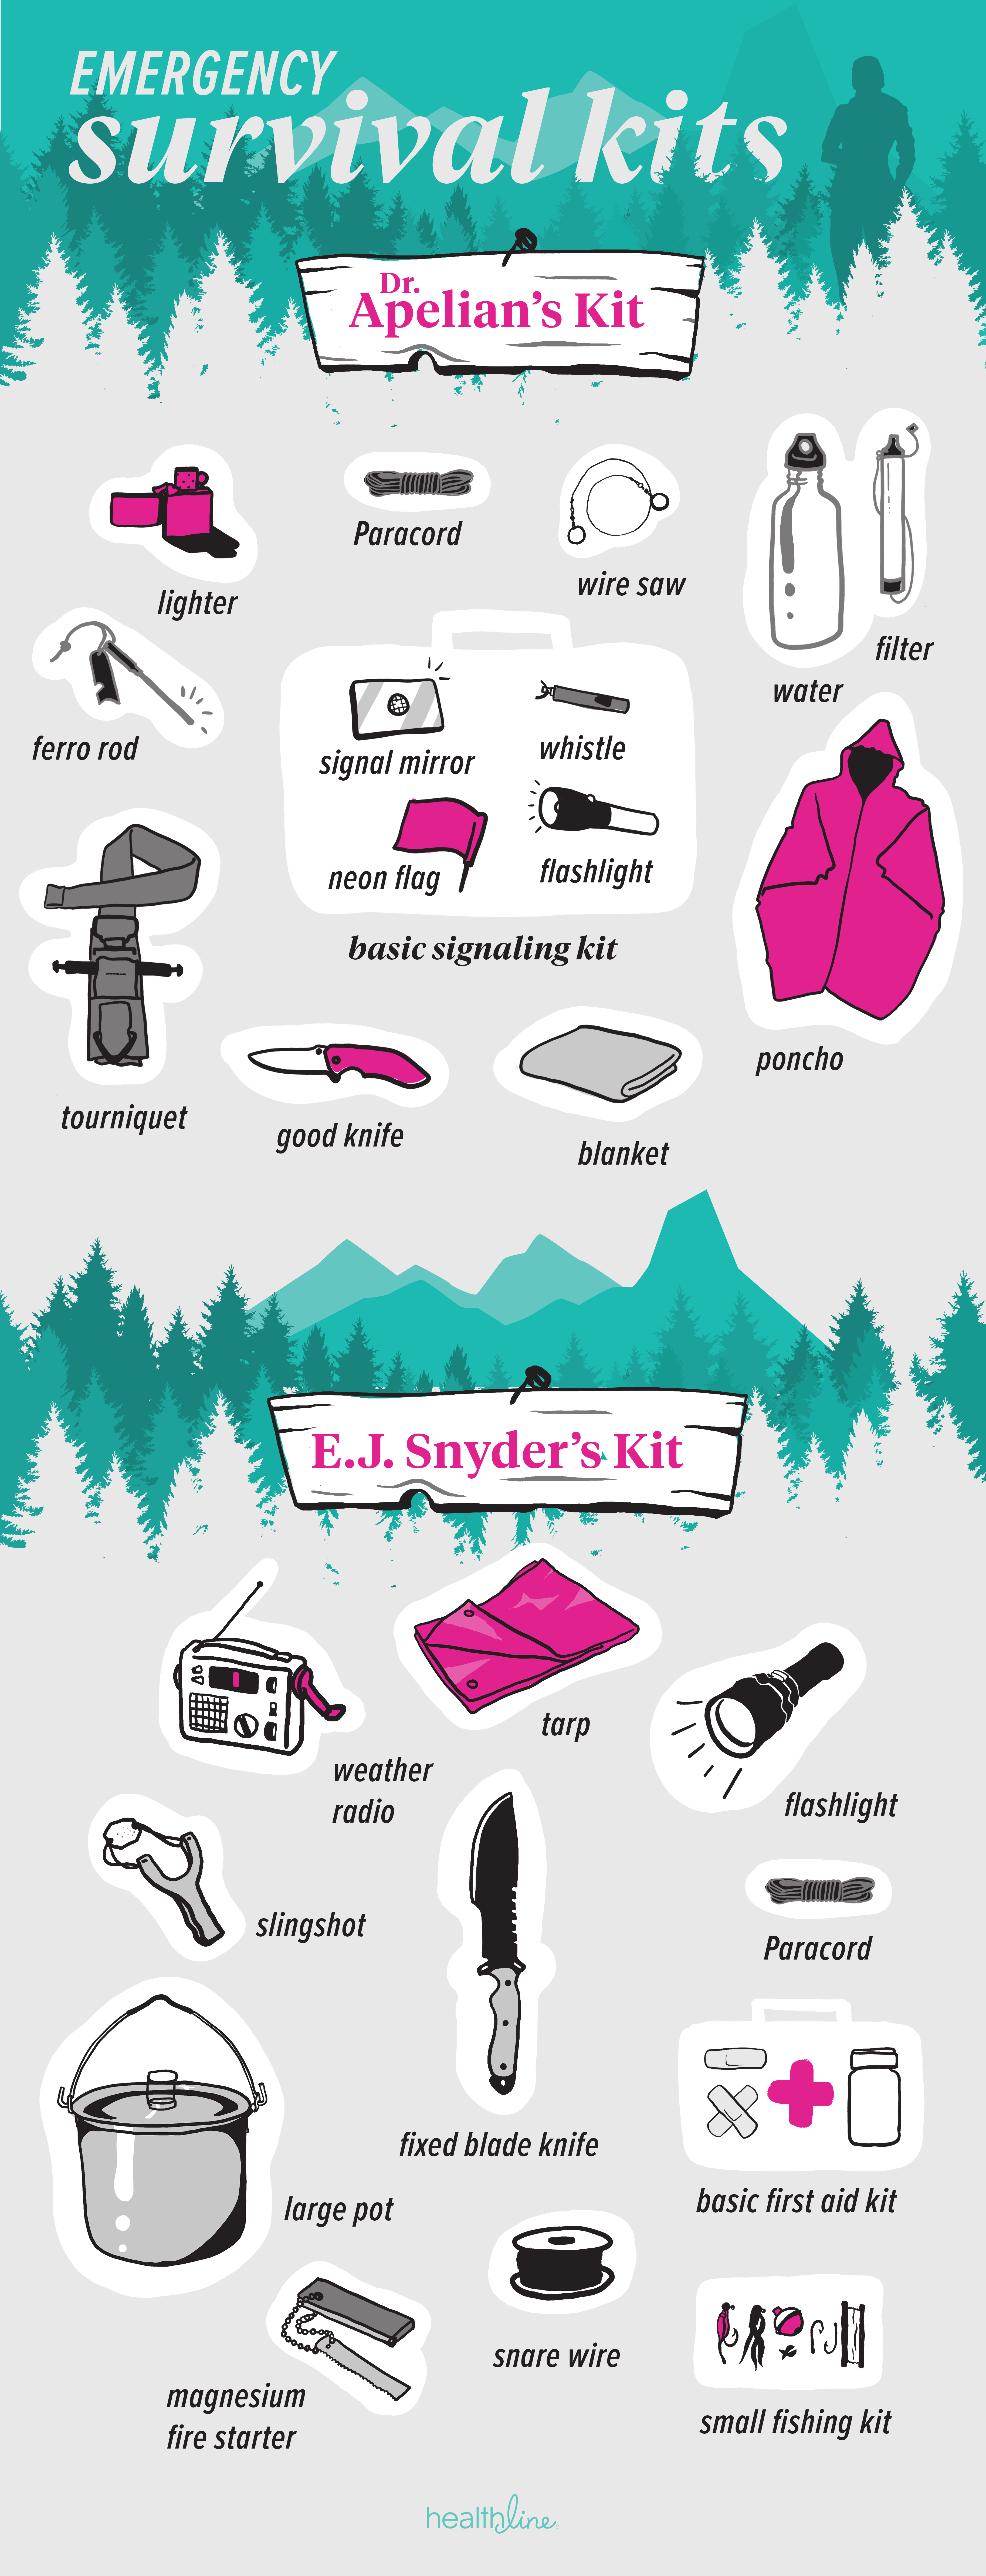 Emergency kits questions answered. Worry clipart survival item